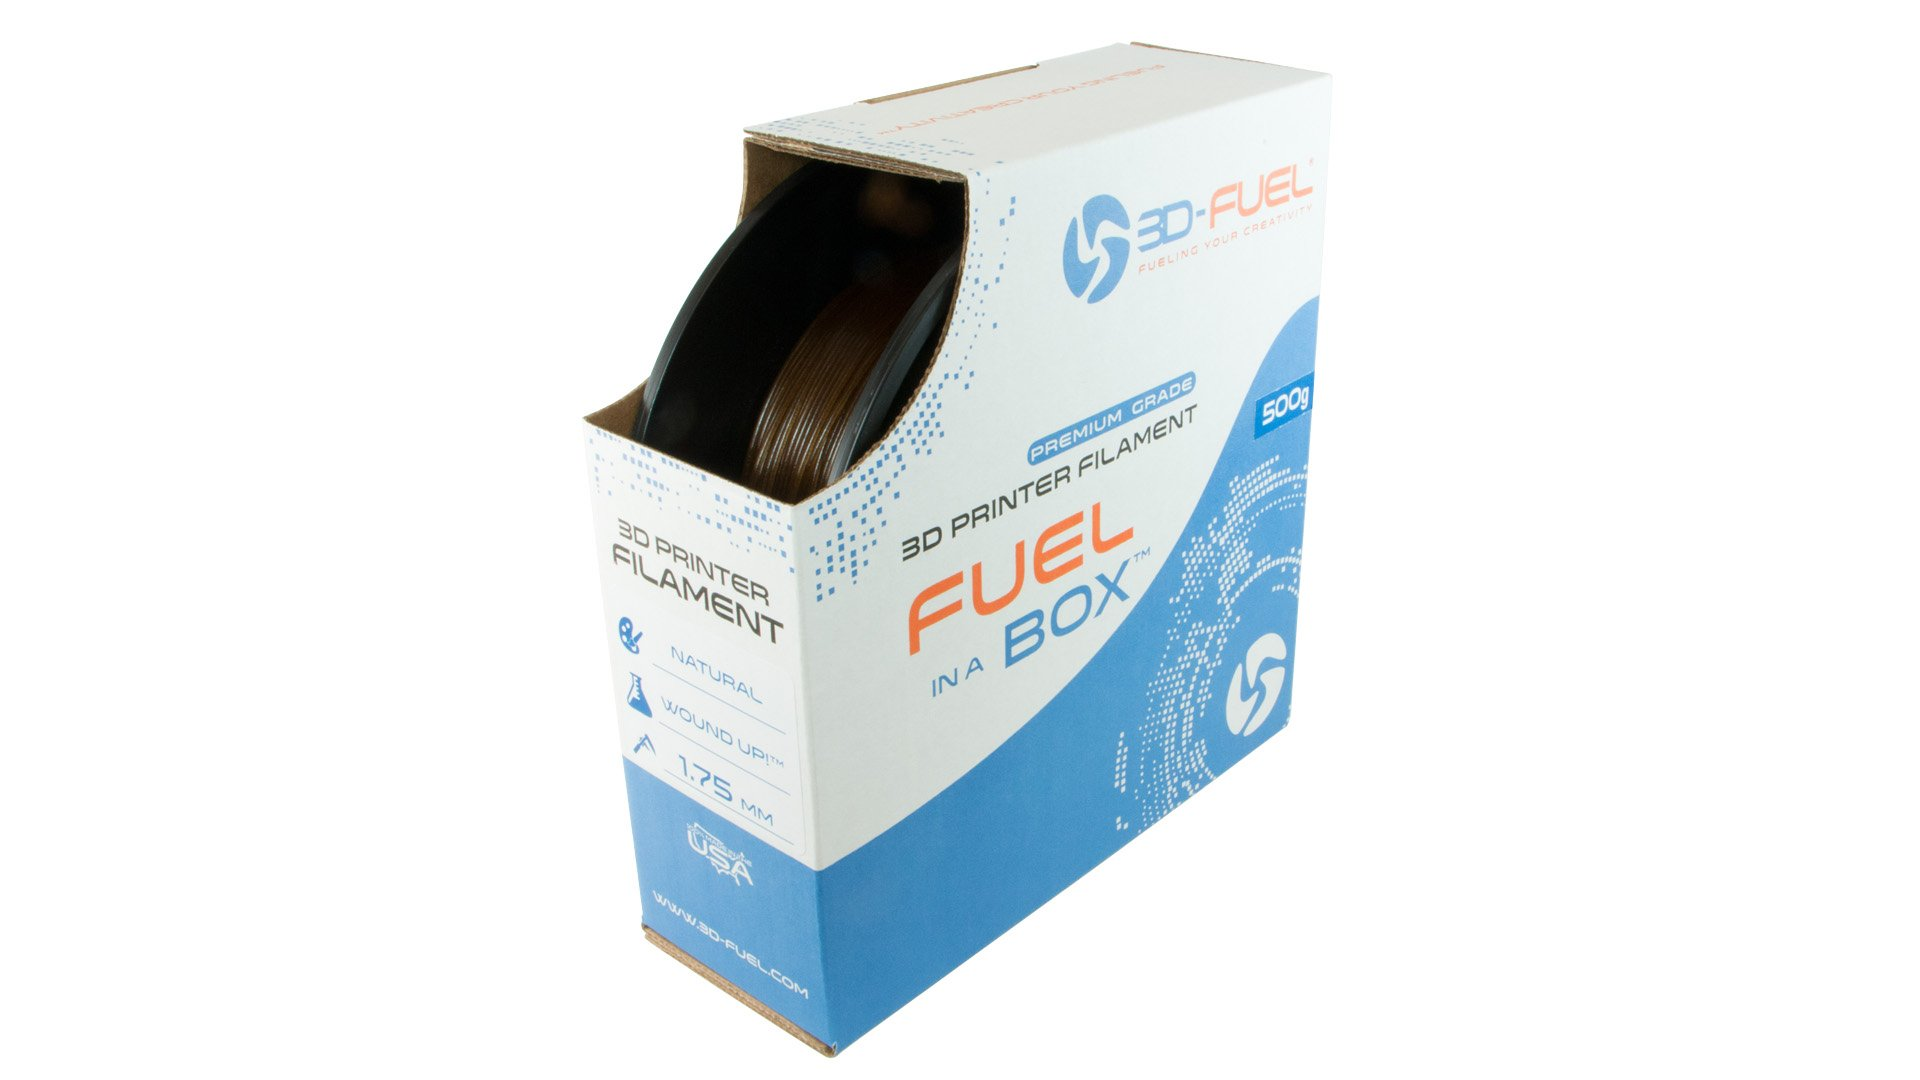 3DFuel 3DFuel Wound-Up Coffee Based 3D Filament 500g spool 1.75mm +or- 0.05mm Made In USA